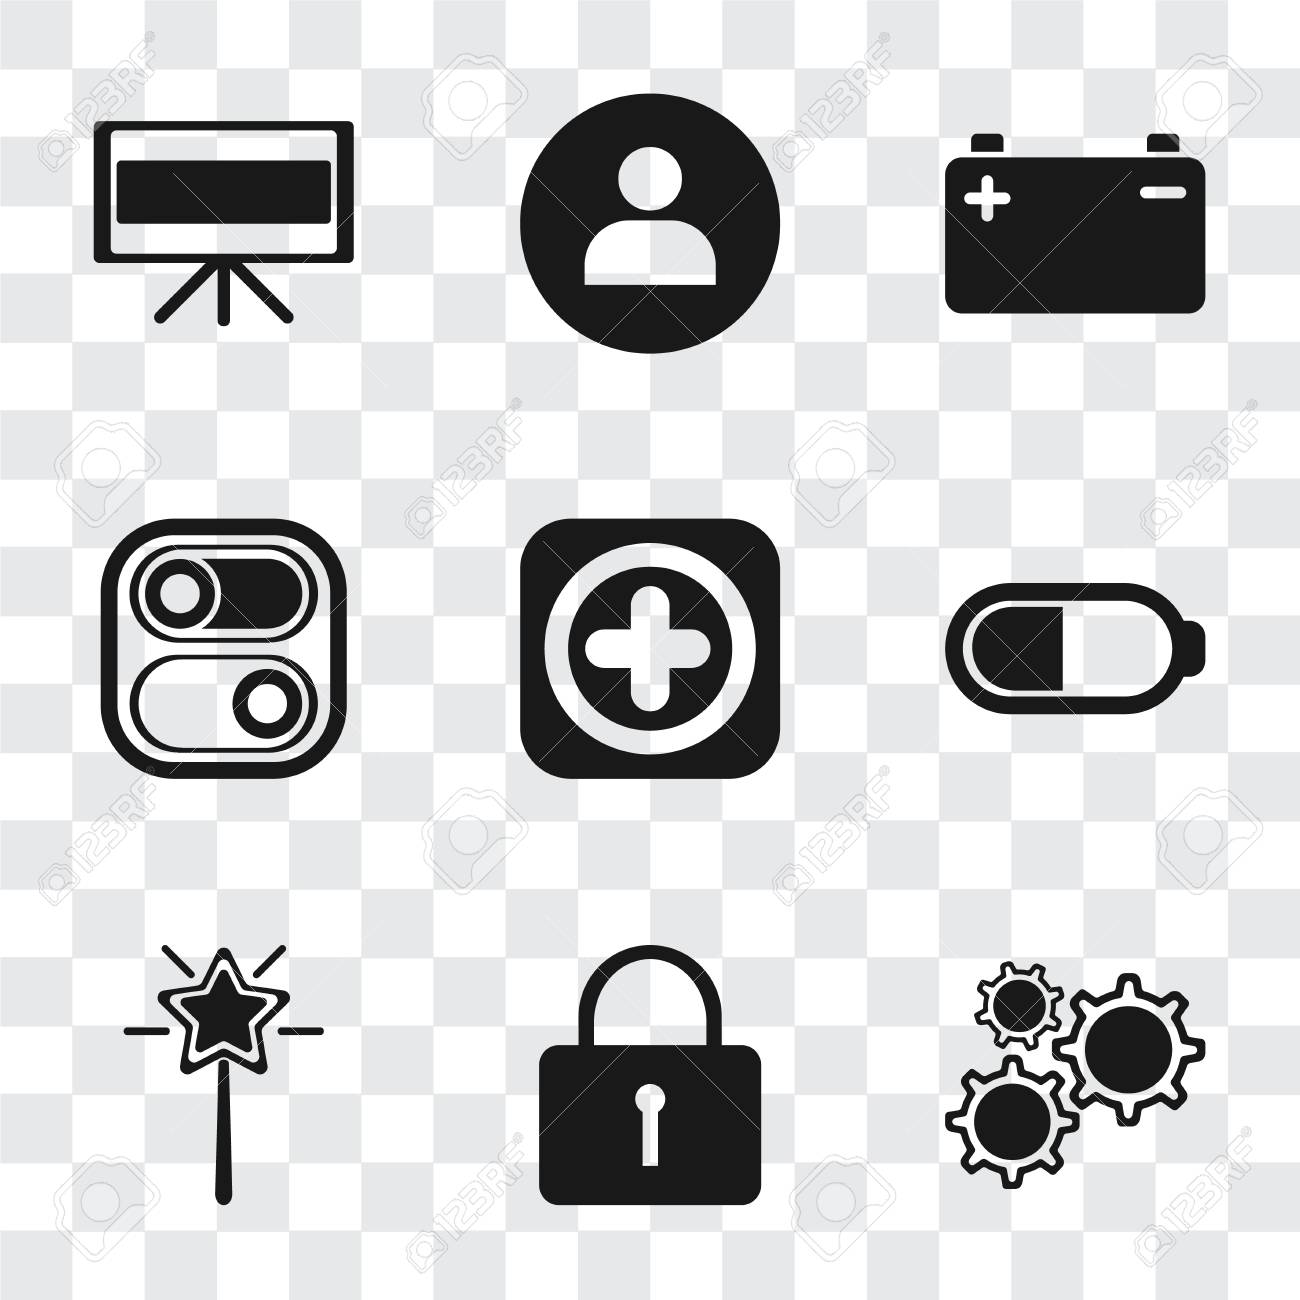 Set Of 9 simple transparency icons such as Settings, Locked, Magic wand,  Battery, Add, Switch, User, Television, can be used for mobile, pixel  perfect